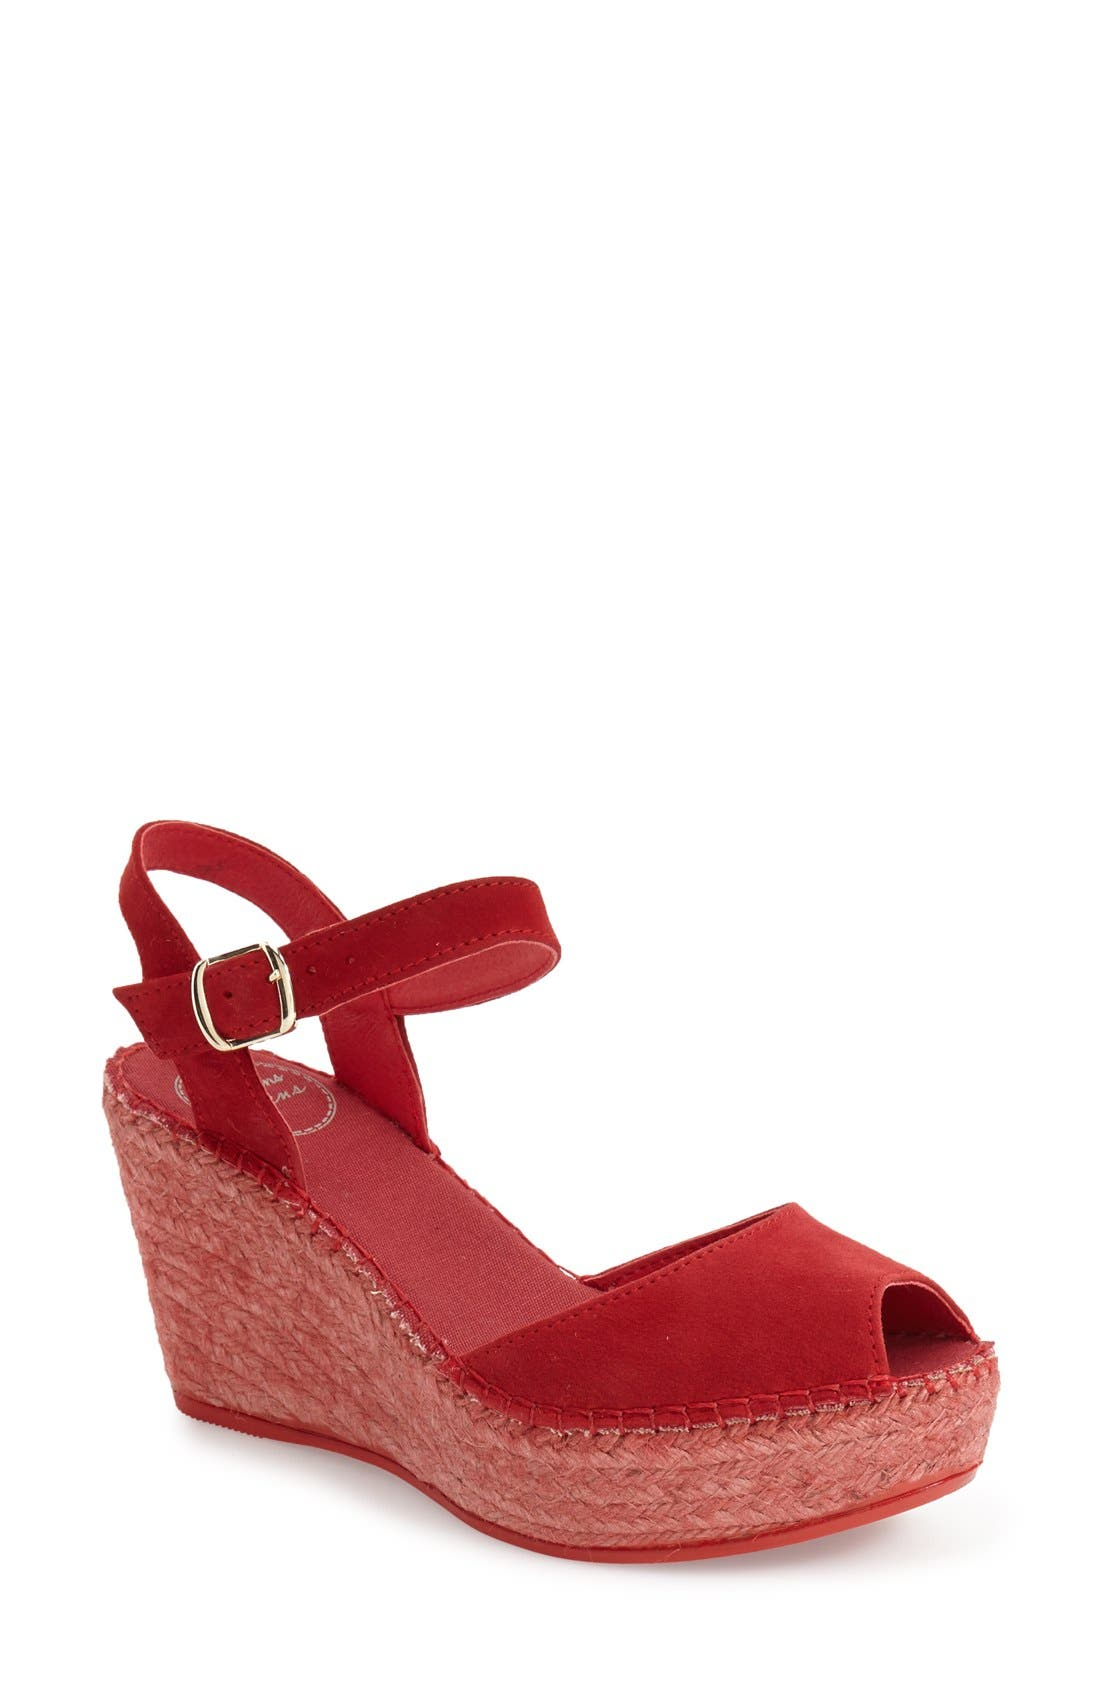 Laura Espadrille Wedge Sandal,                             Main thumbnail 1, color,                             RED SUEDE